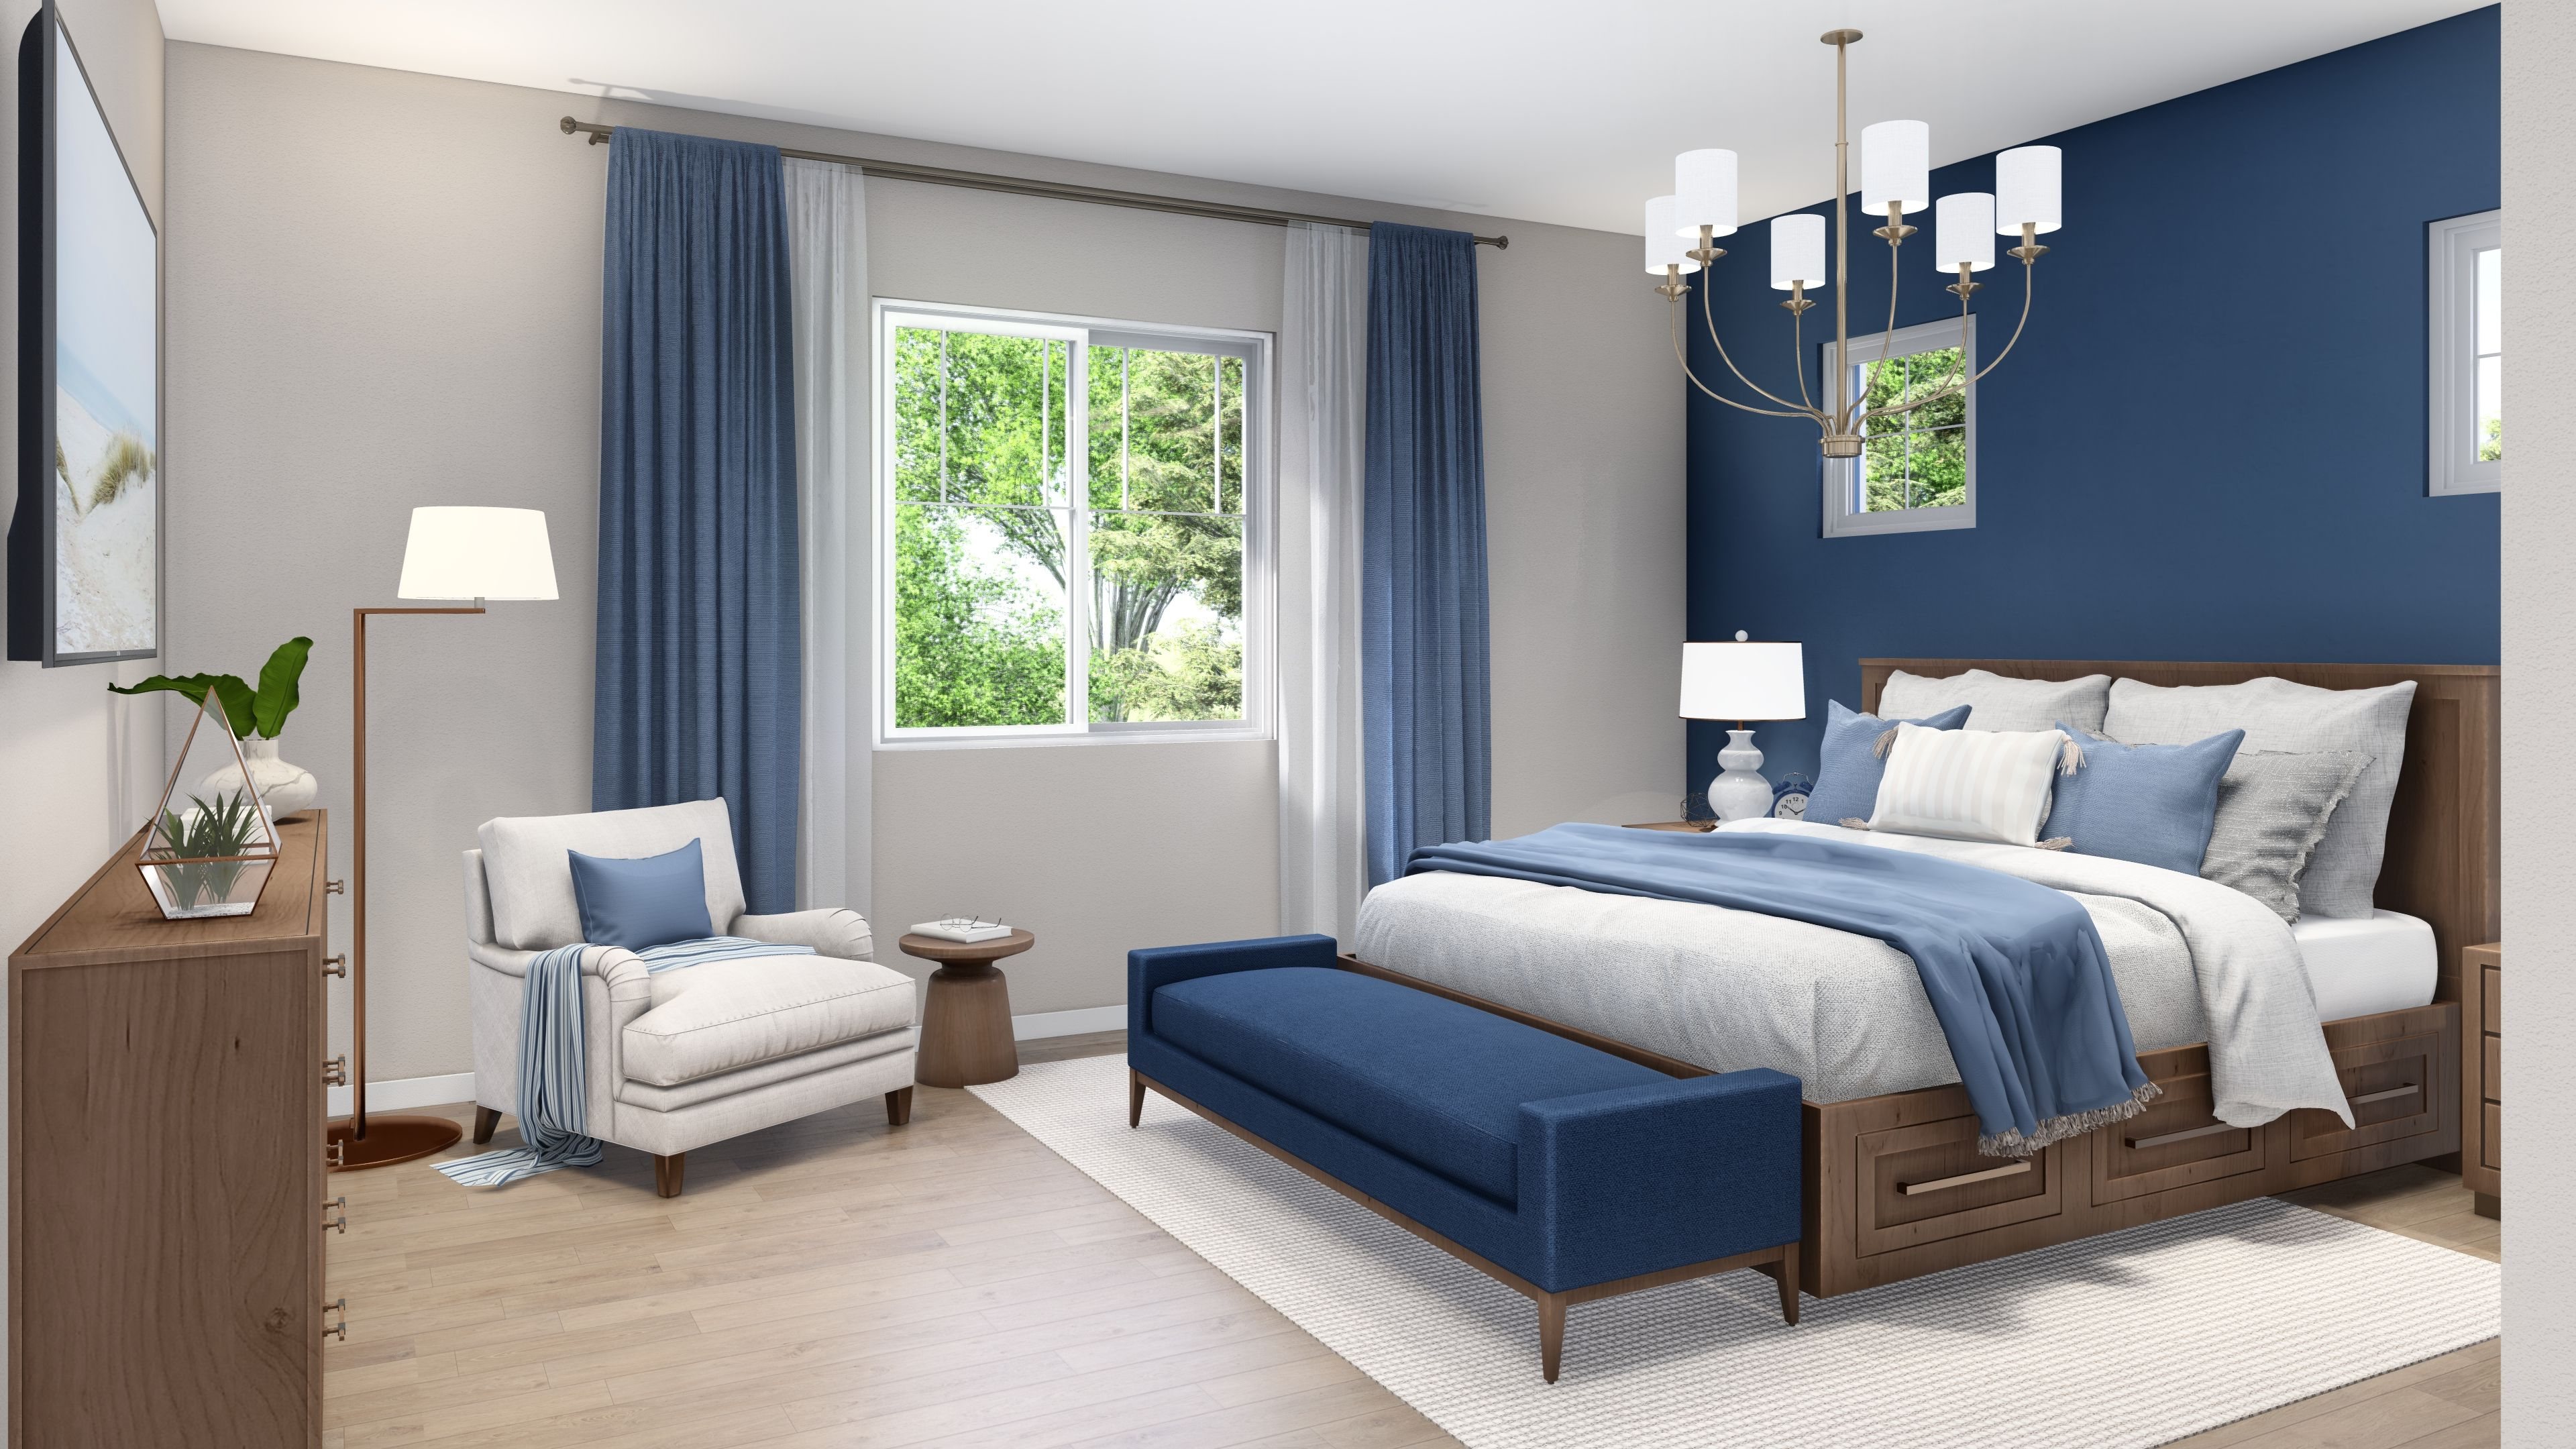 Bedroom featured in the Plan 1 By R at Righetti in San Luis Obispo, CA